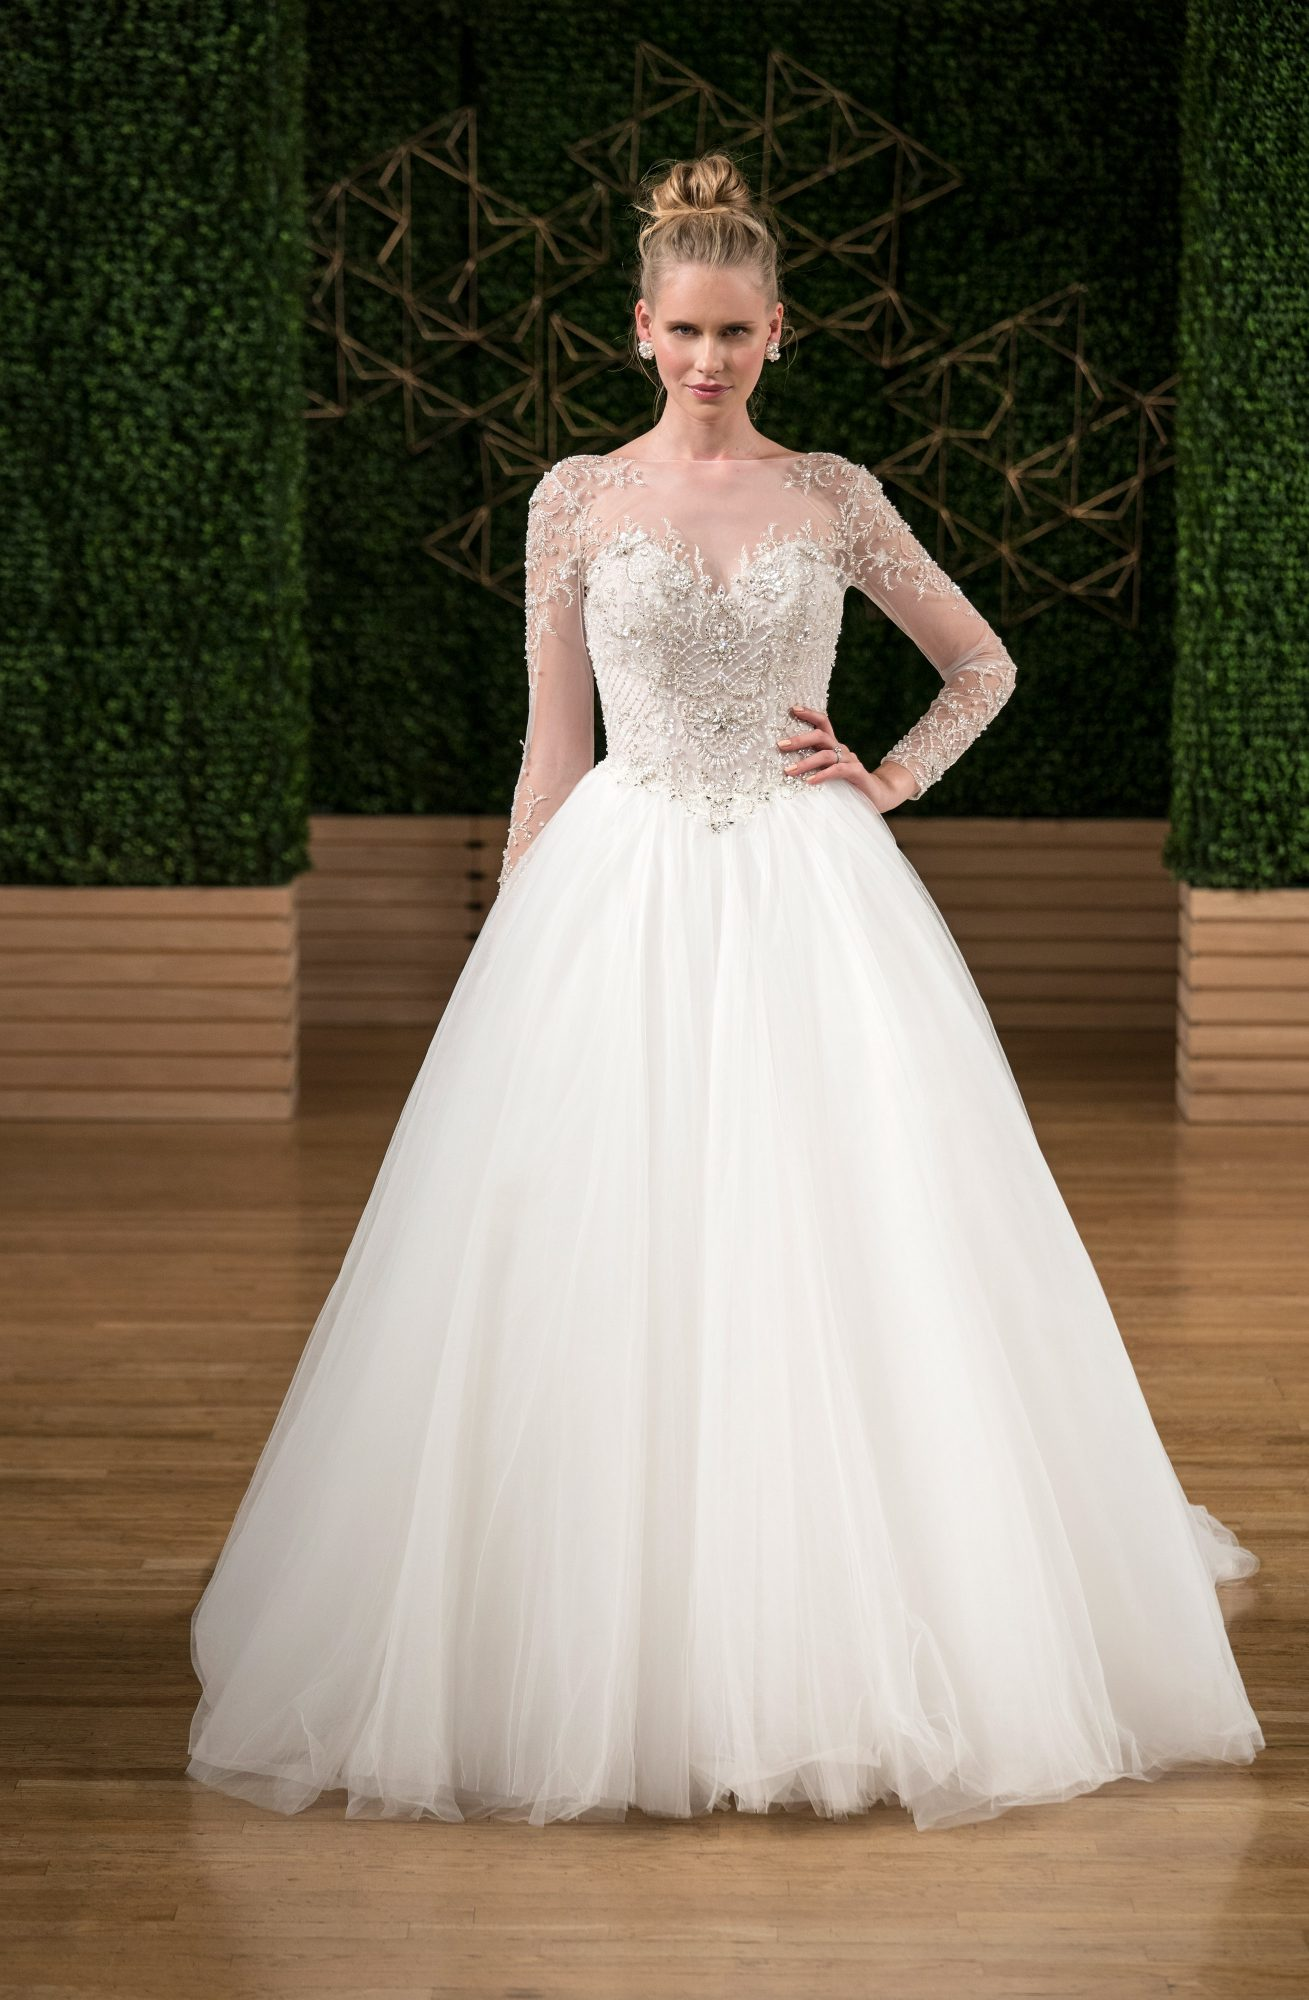 sottero midgley wedding dress fall 2018 ball gown tulle illusion long sleeves